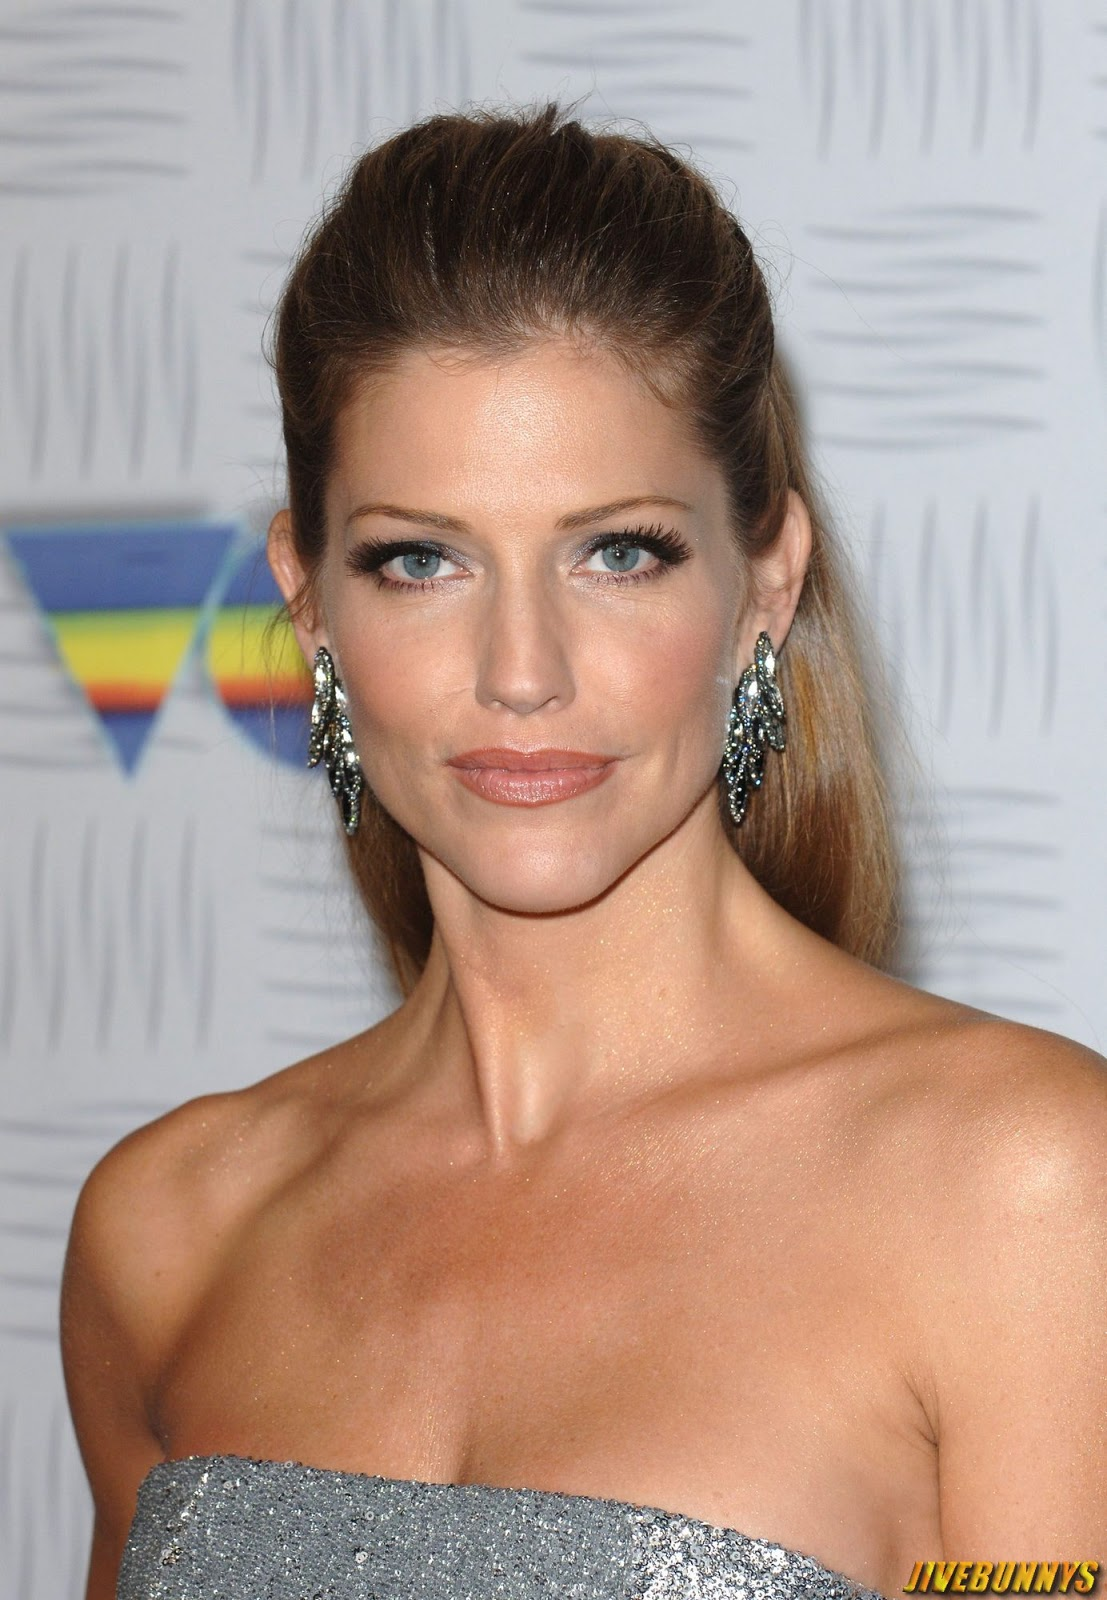 jivebunnys female celebrity picture gallery tricia helfer